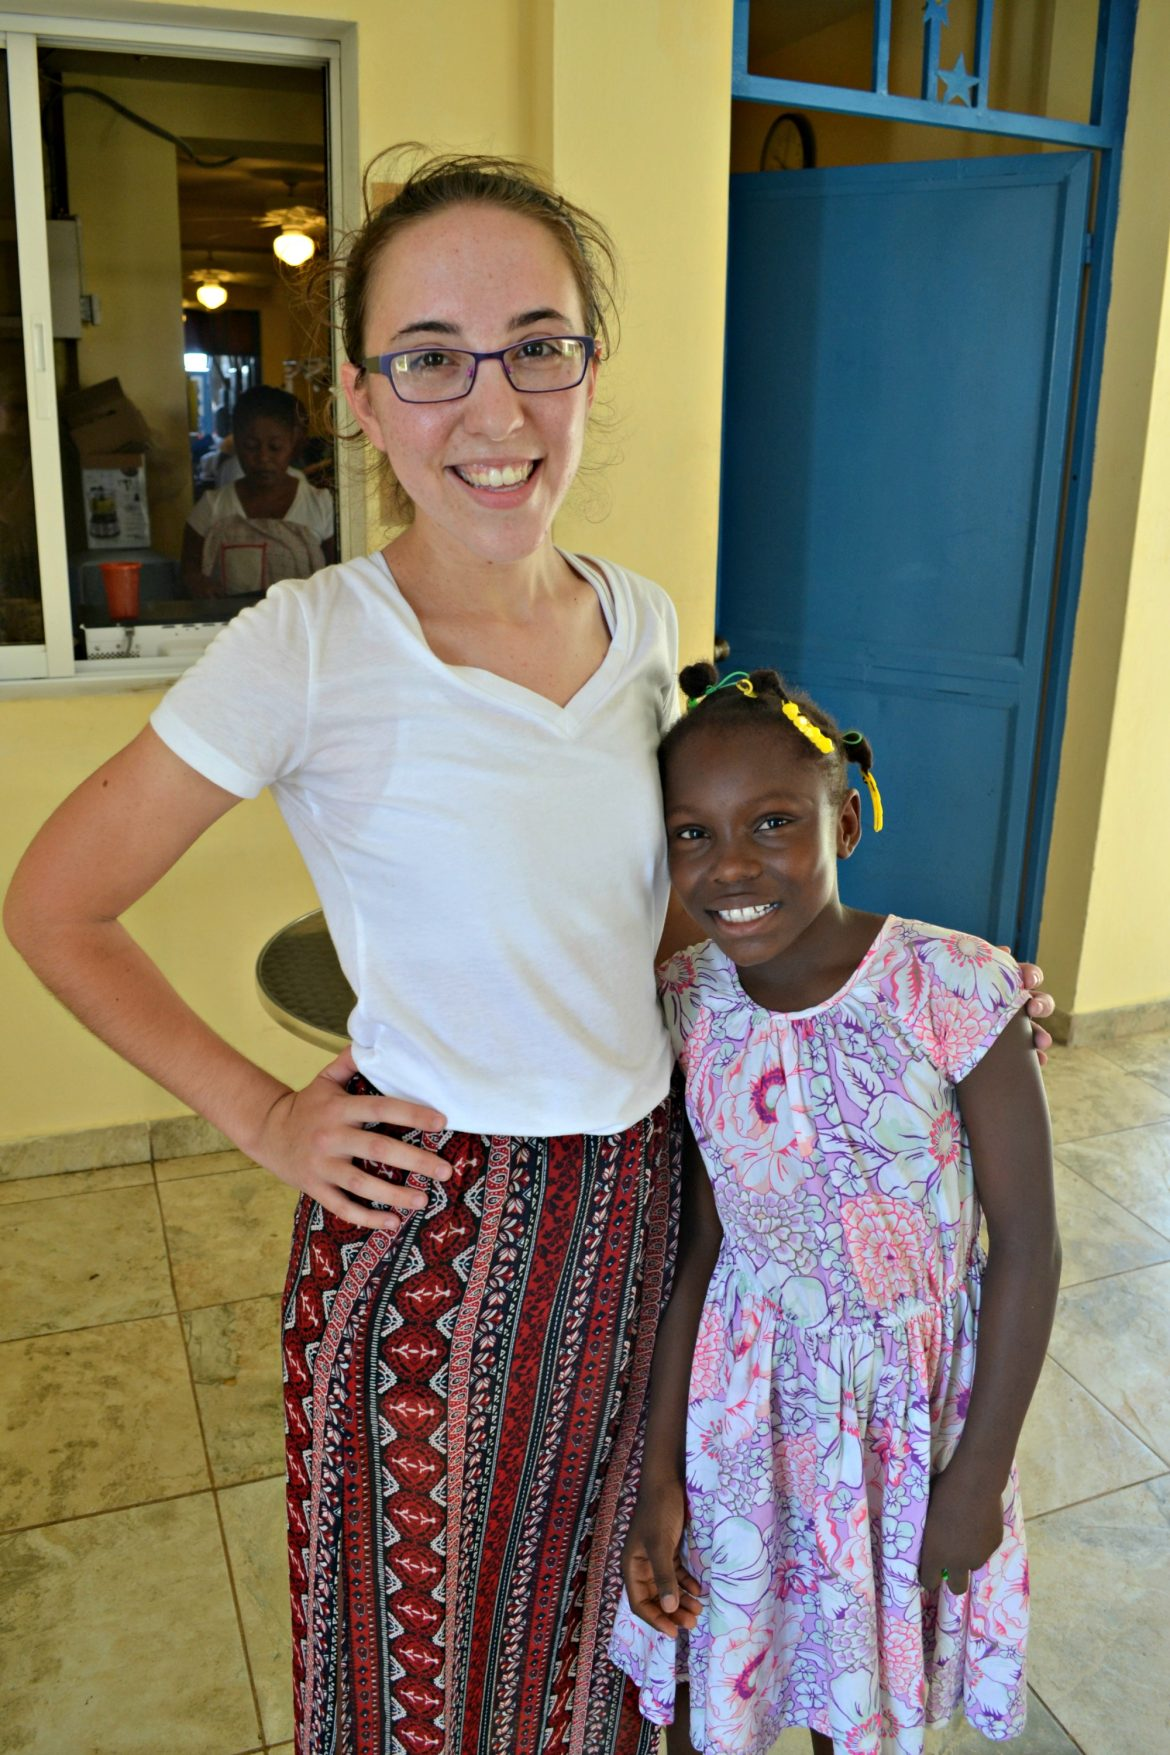 Myself and Isselande, one of the BLB kids, in our church attire.